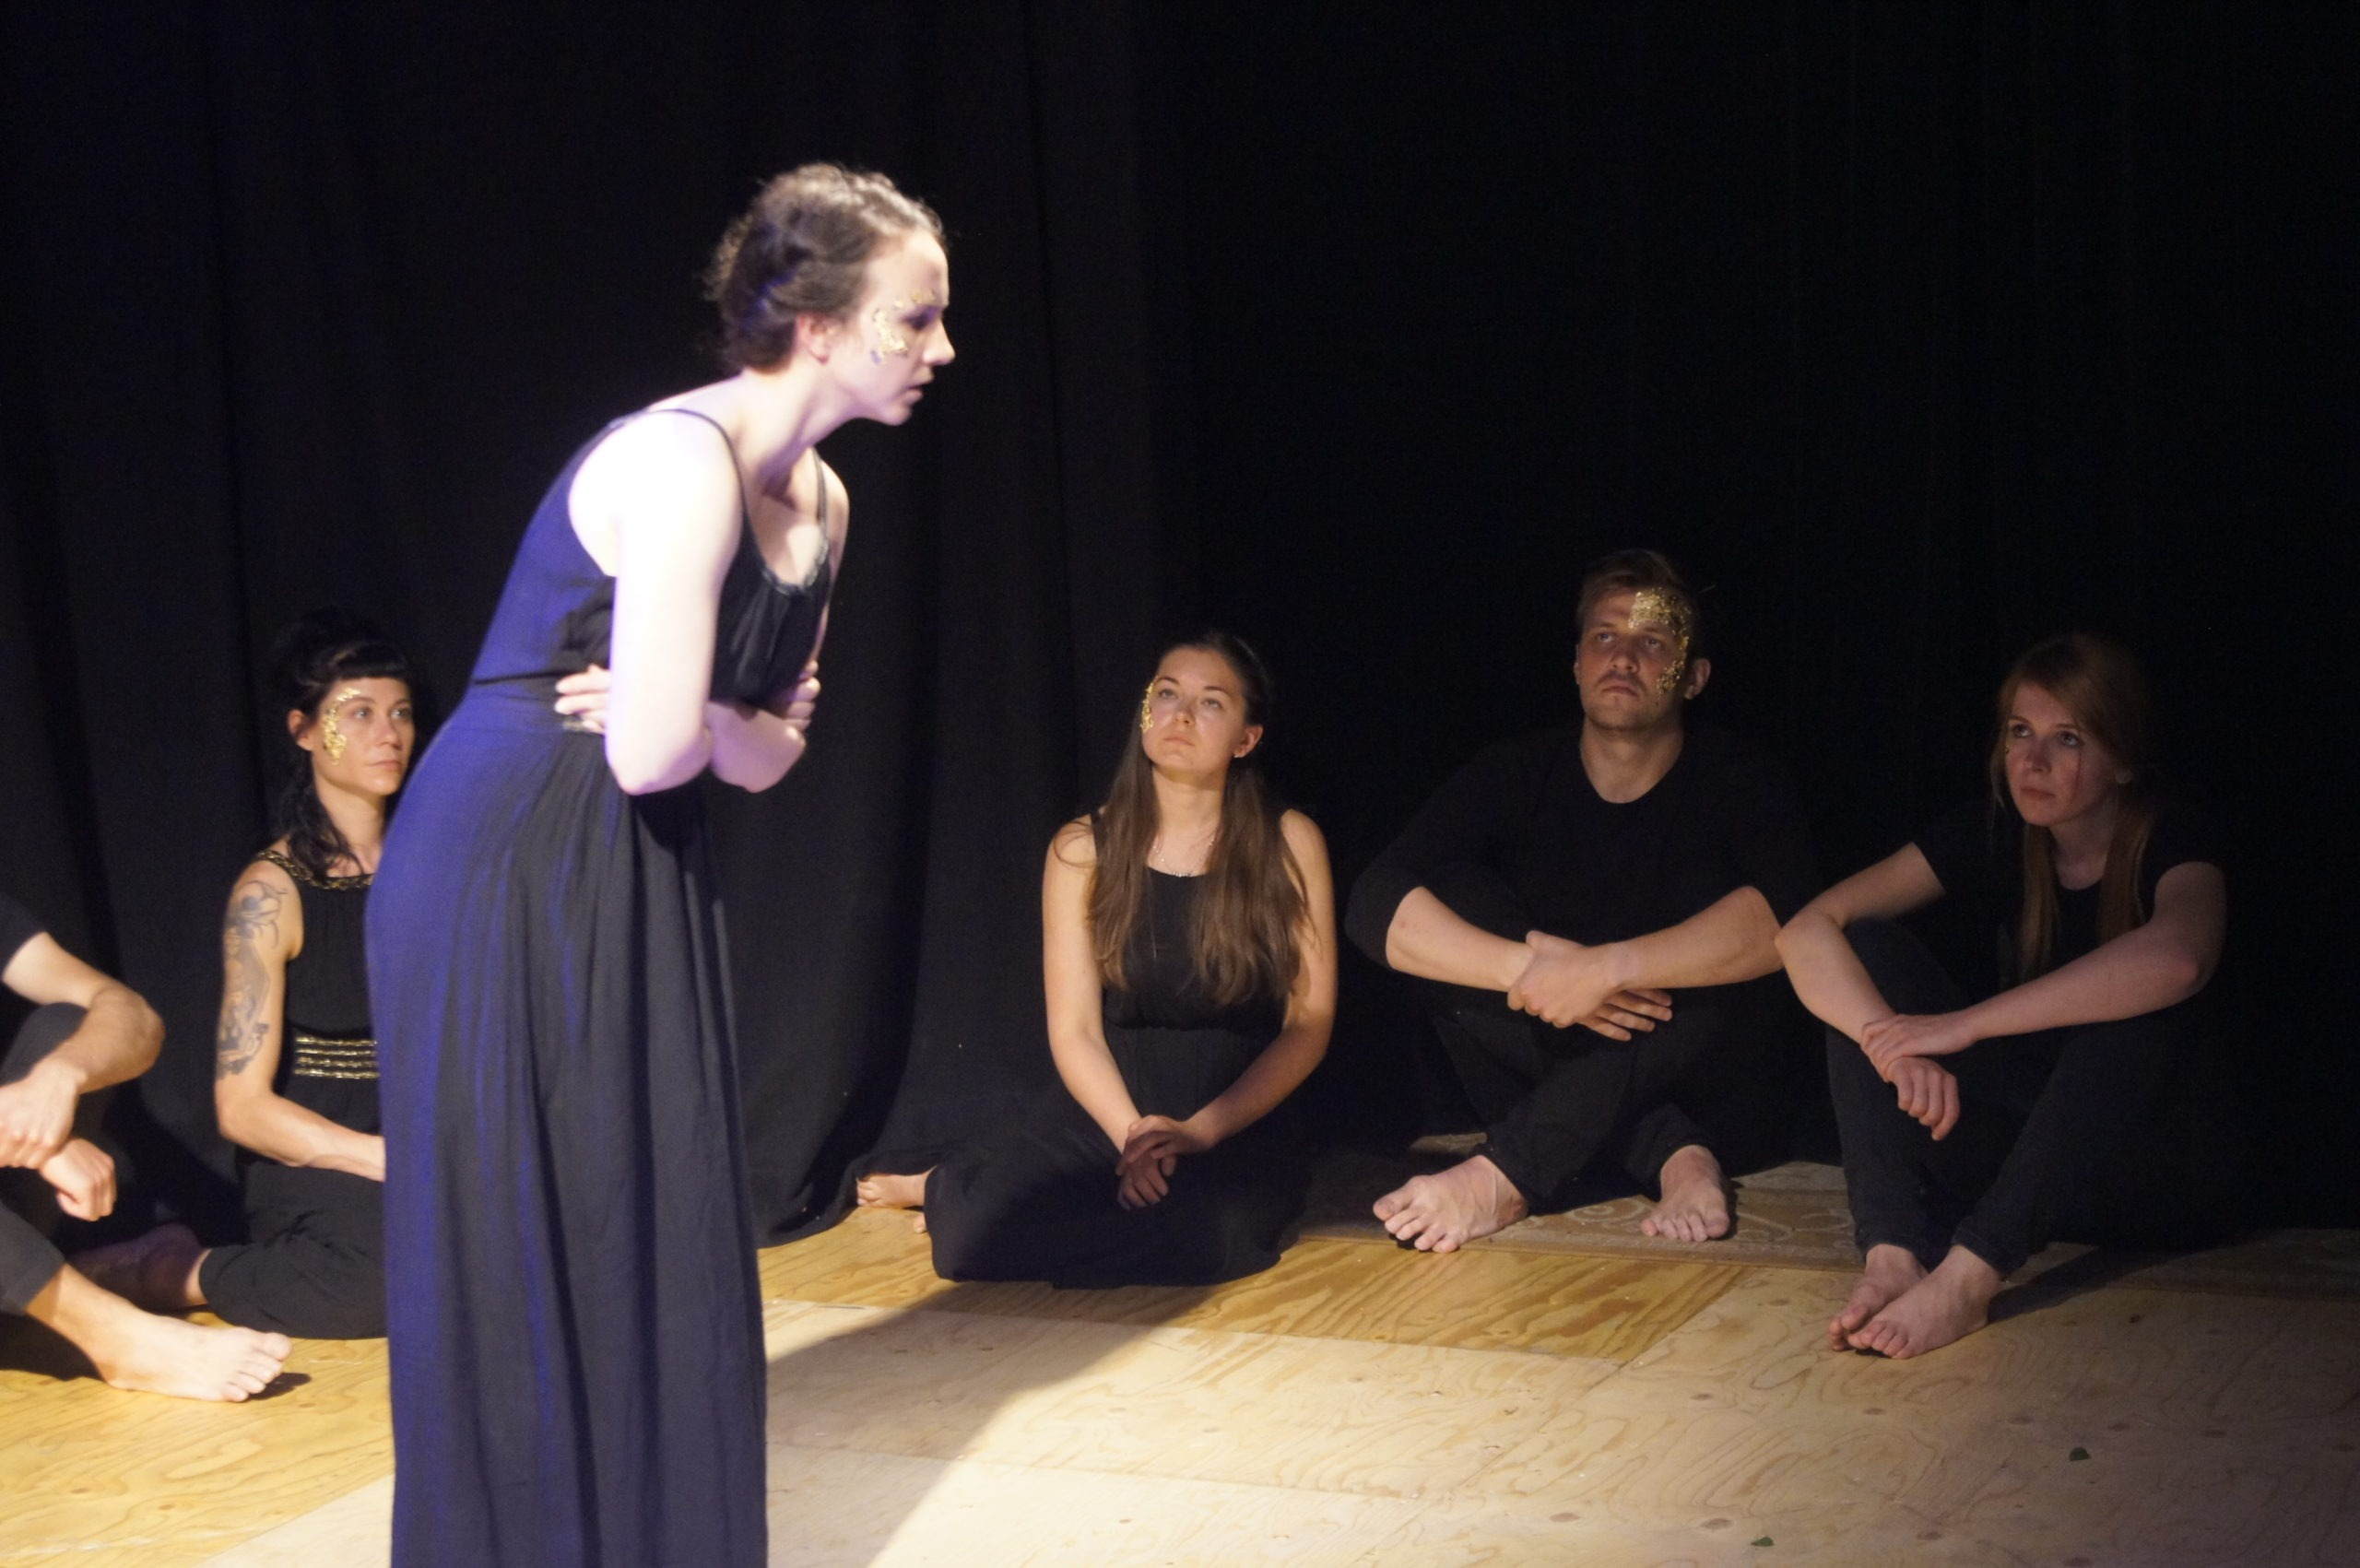 Photo from the theatre performance Keeping up with the Greeks. Woman on stage with a black dress, brown hair, golden flakes on her right cheek, holding her stomach. Behind her, four actors on the floor, black clothes, golden flakes on their face